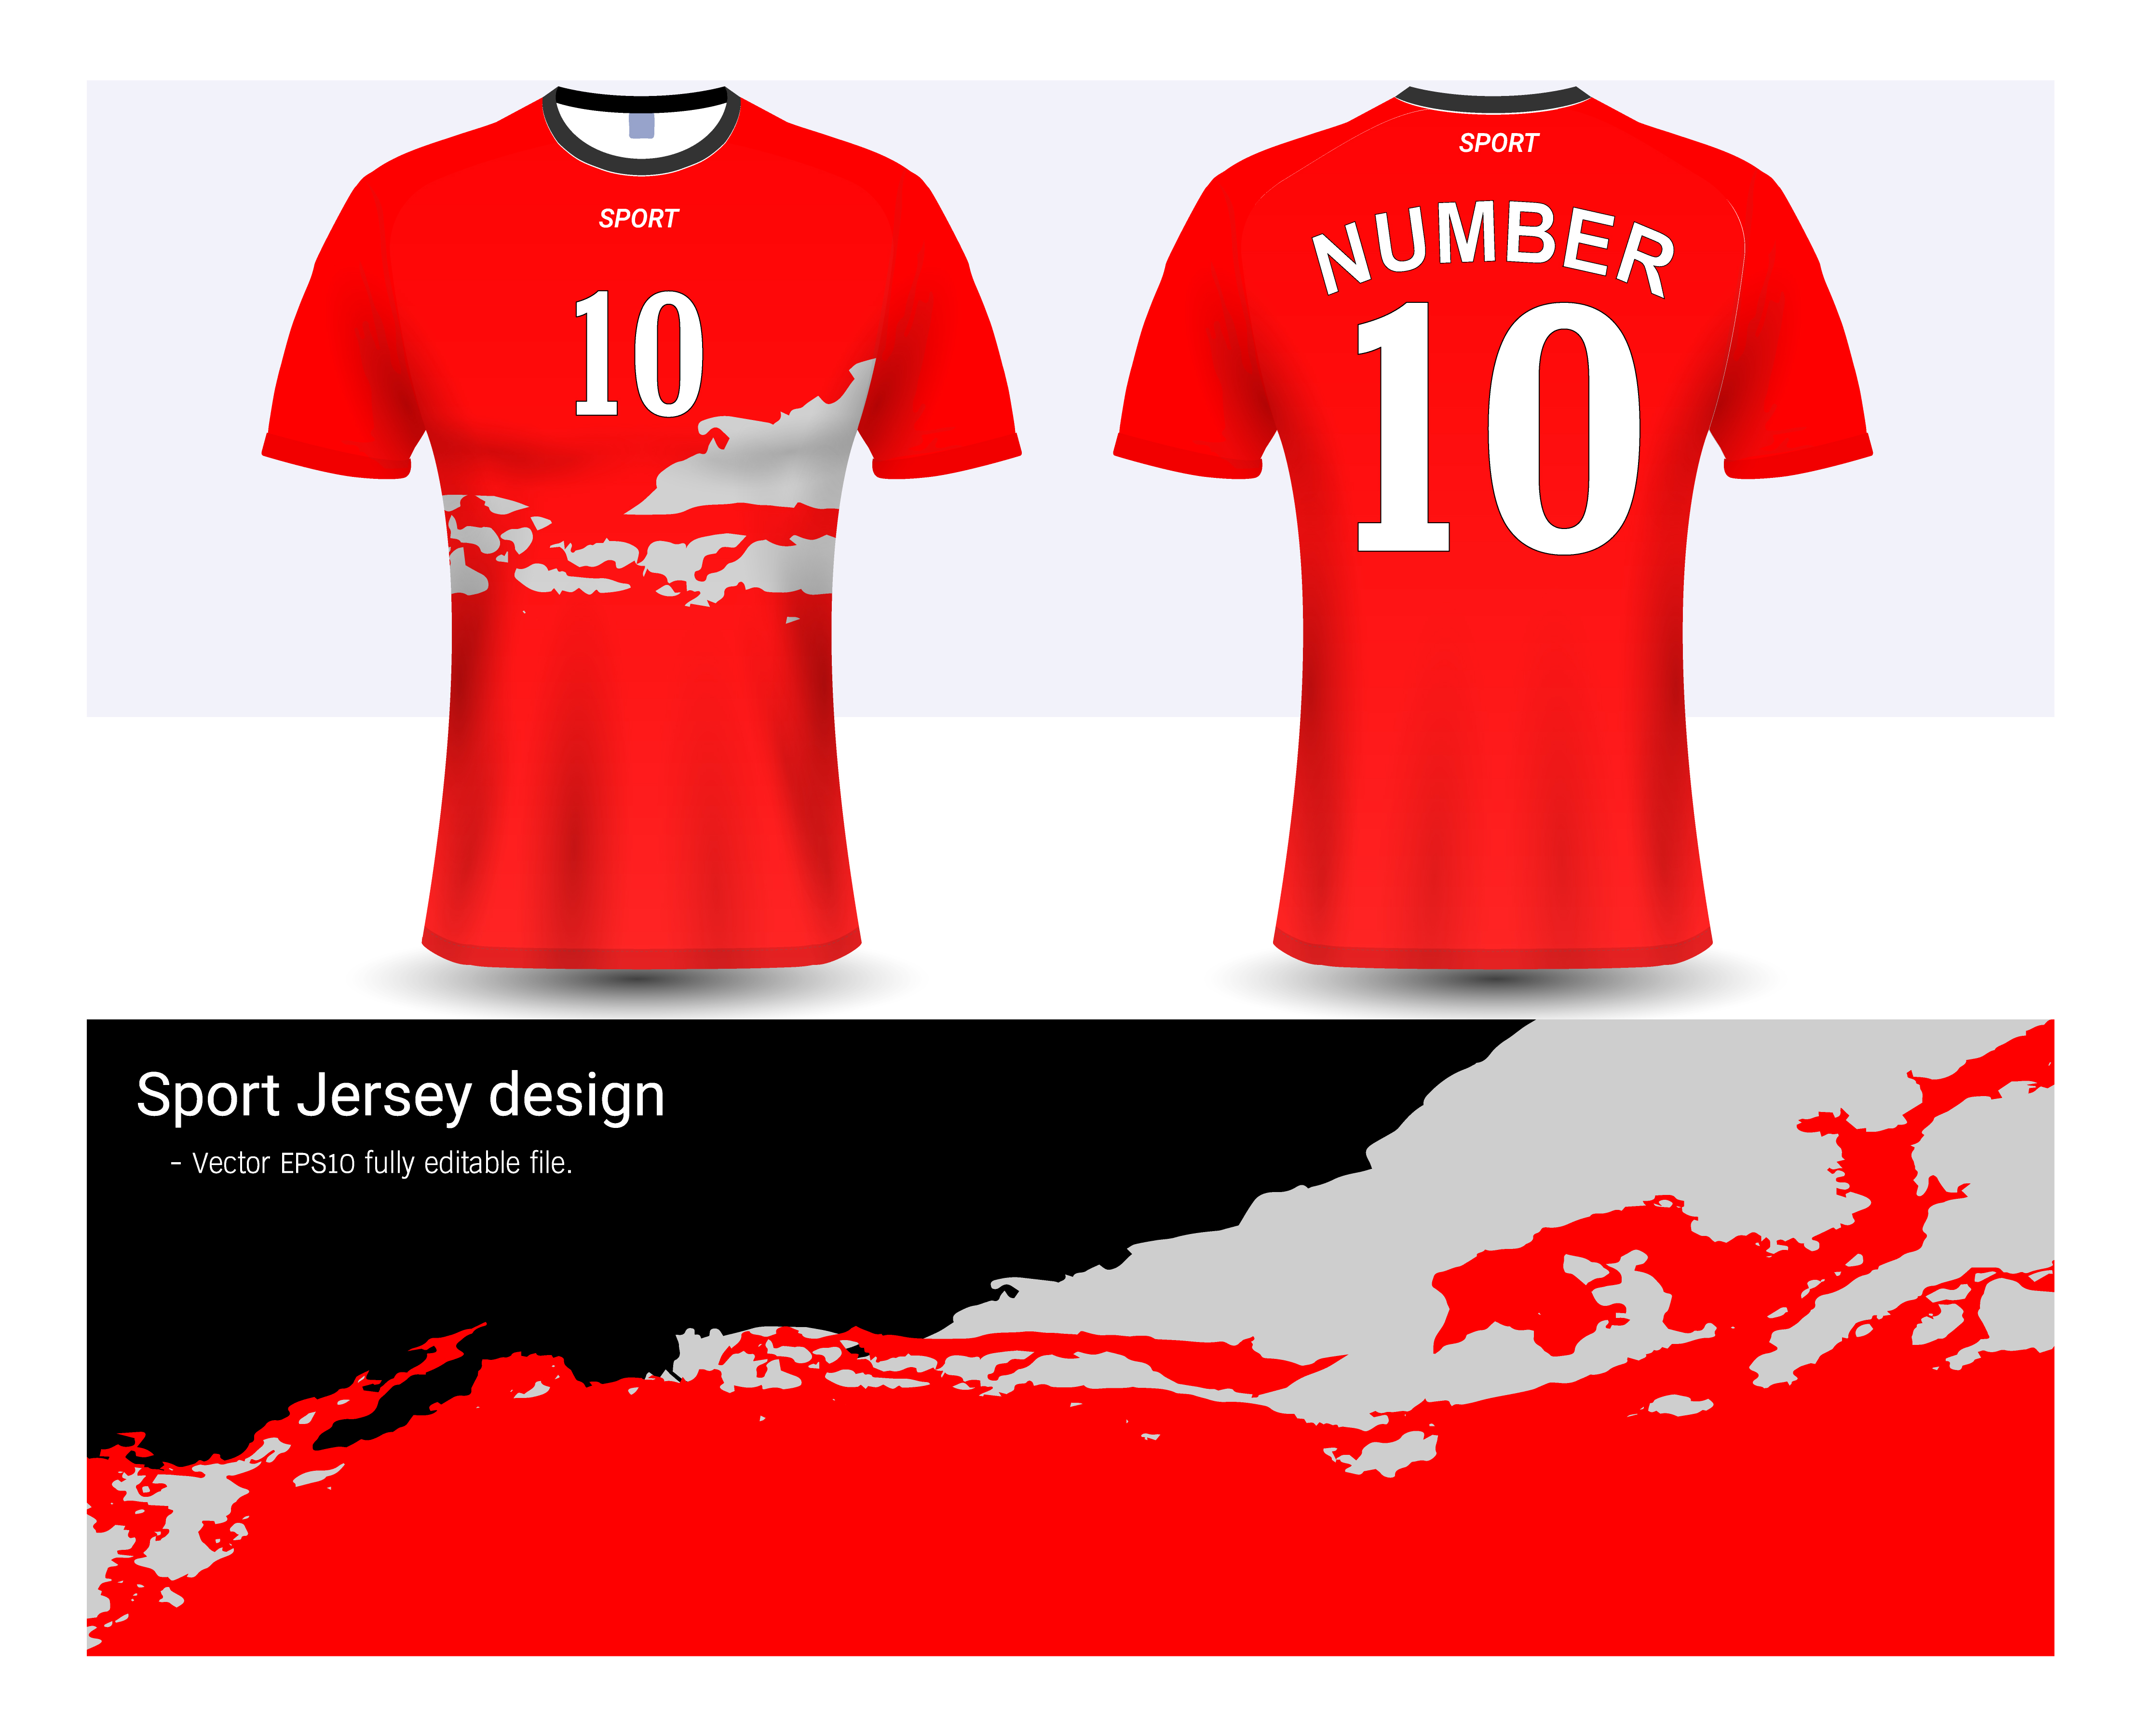 vector soccer jersey and t shirt sport mockup template graphic design for football club or activewear uniforms